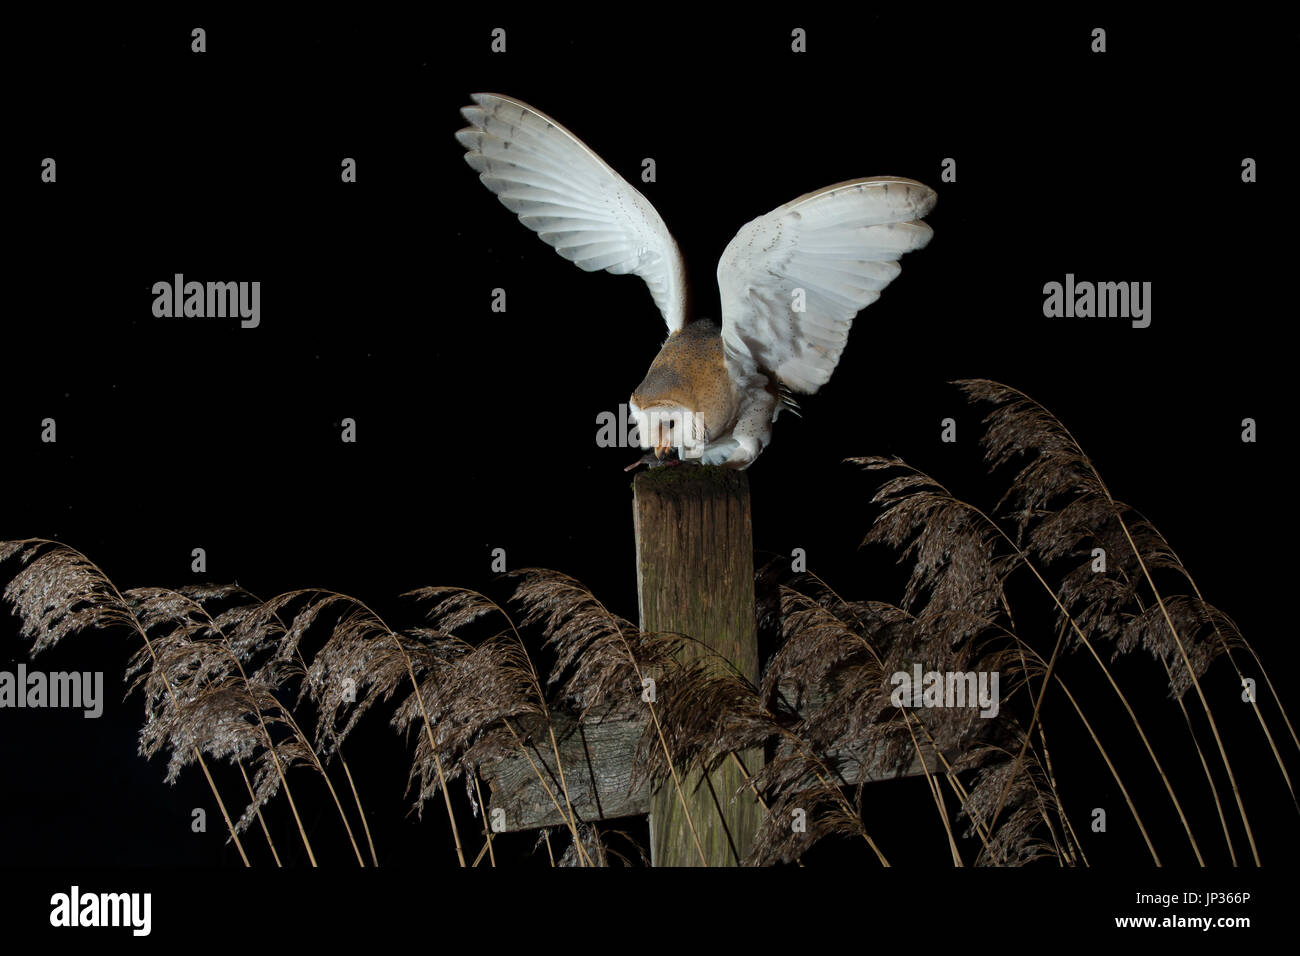 Barn owl (Tyto alba) at night in reeds - Stock Image